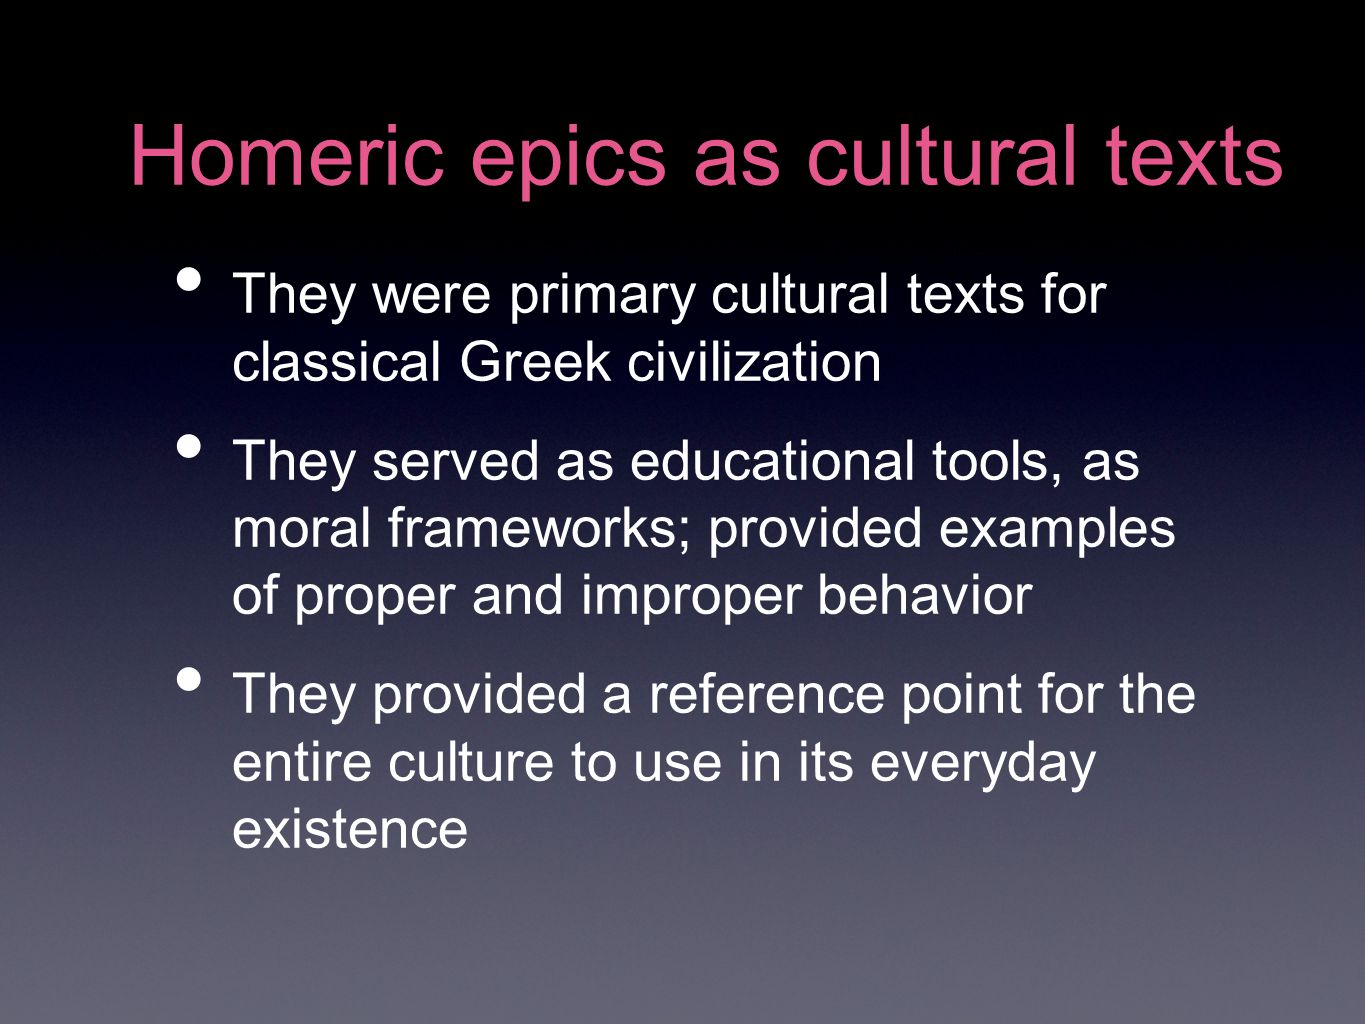 Homeric epics as cultural texts They were primary cultural texts for classical Greek civilization They served as educational tools, as moral frameworks; provided examples of proper and improper behavior They provided a reference point for the entire culture to use in its everyday existence